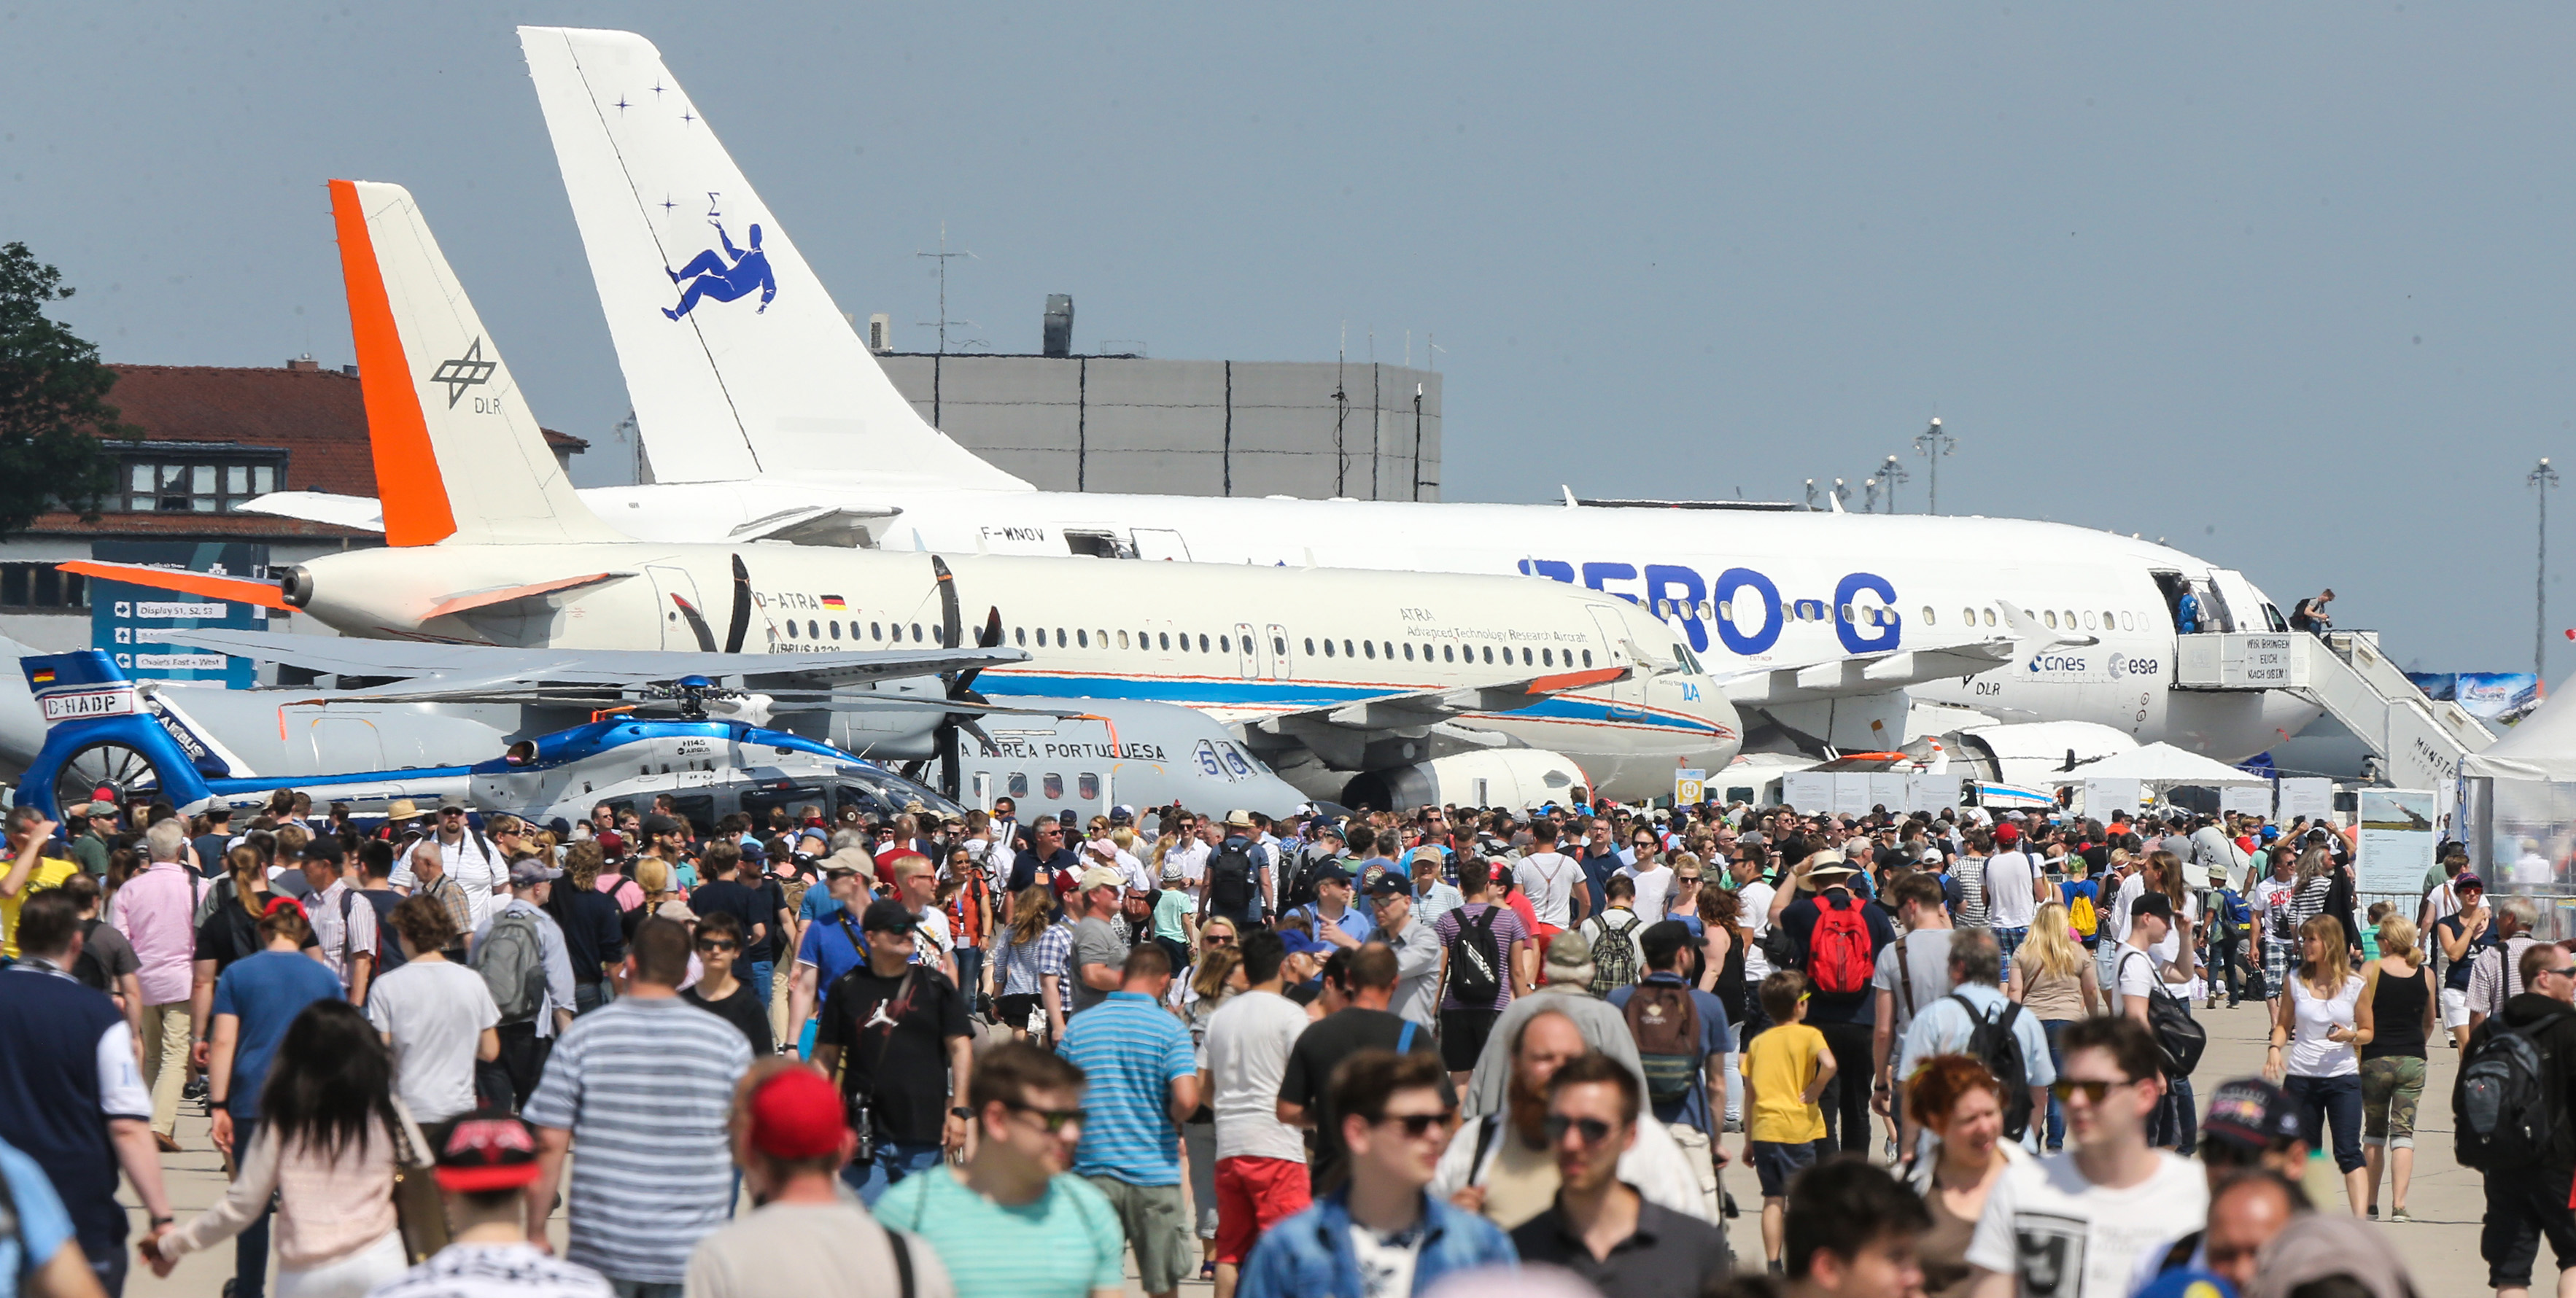 Go airborne! ILA Berlin Air Show from 25th to 29th April